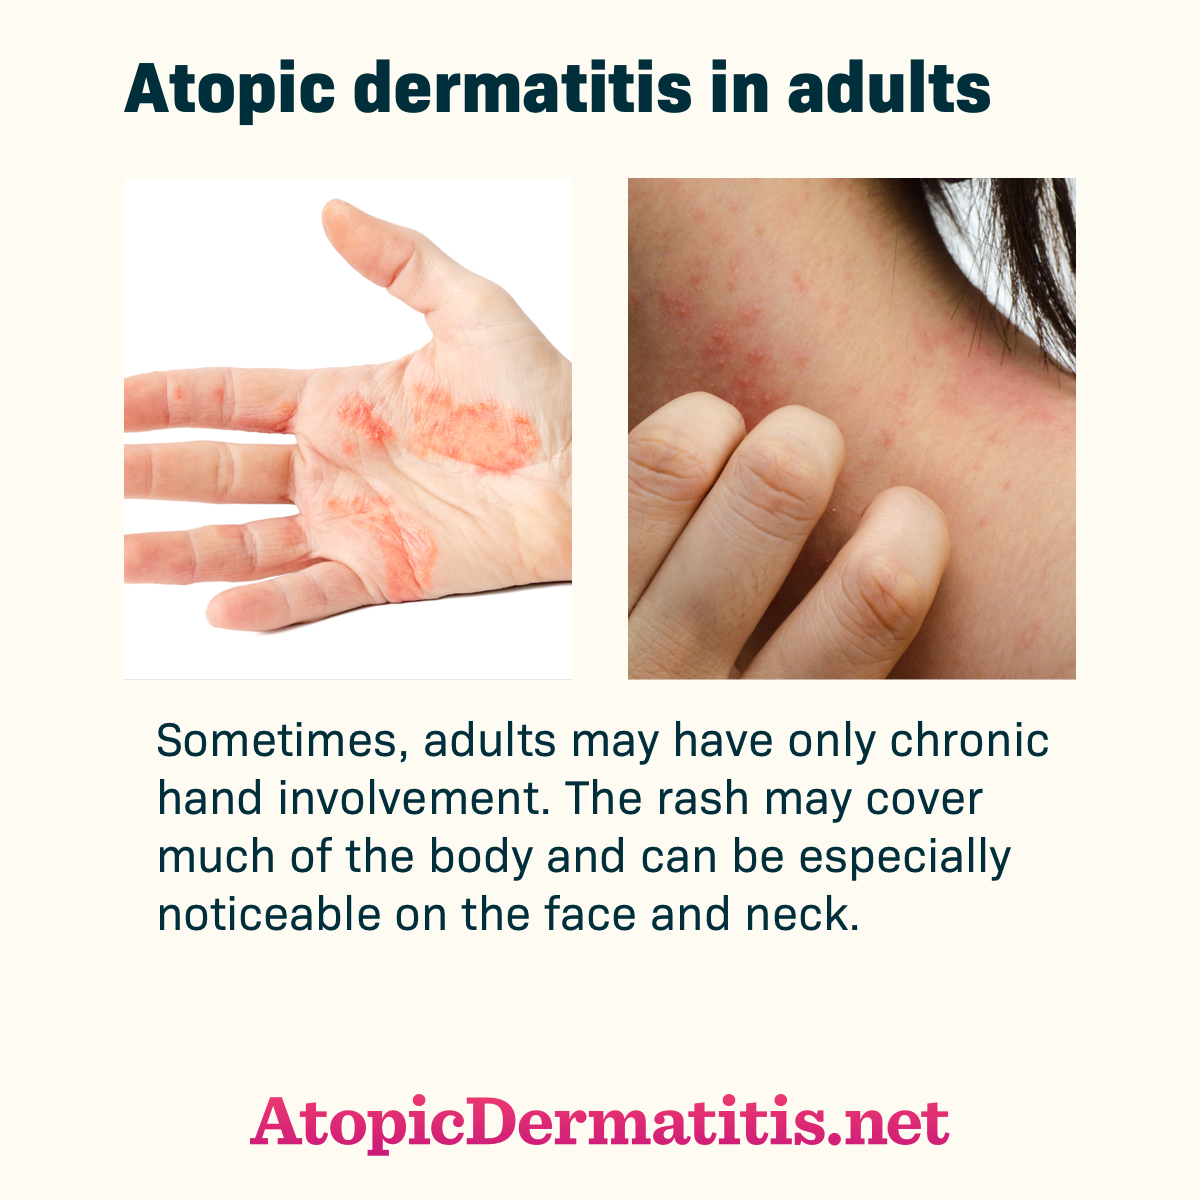 Atopic dermatitis in adults